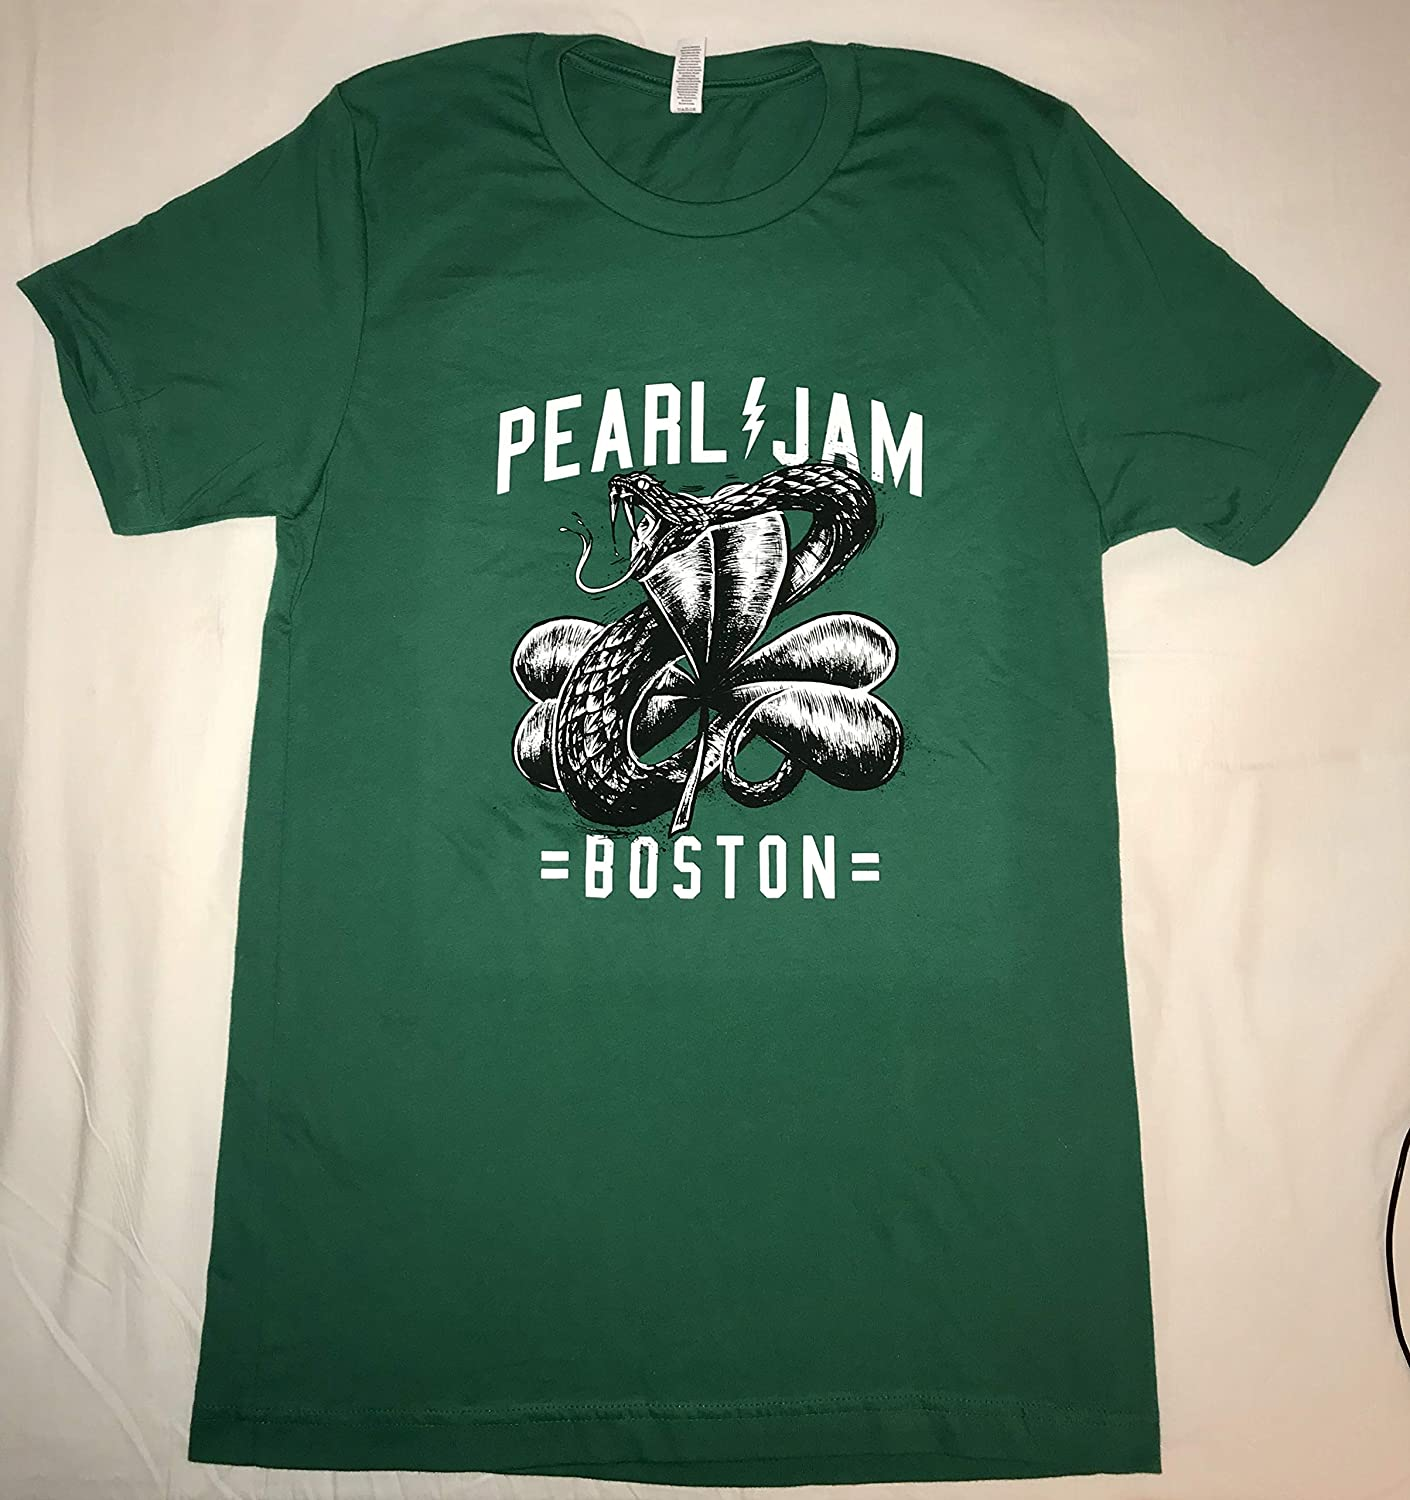 Pearl Jam t shirt boston fenway park snake and clover green large 2018 tour pj concert t-shirt new